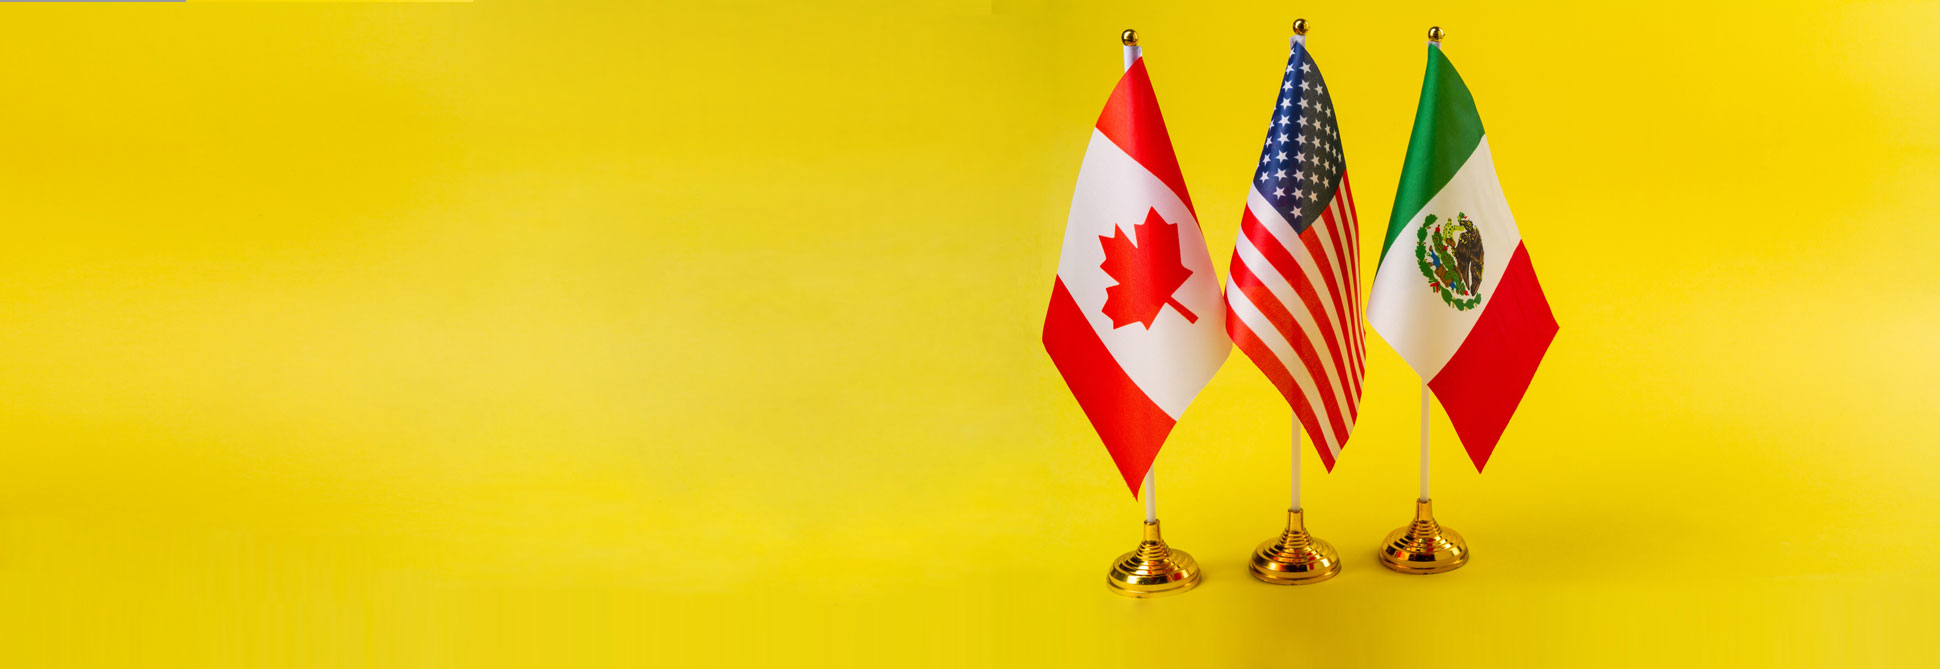 canada usa and mexico flag on yellow background